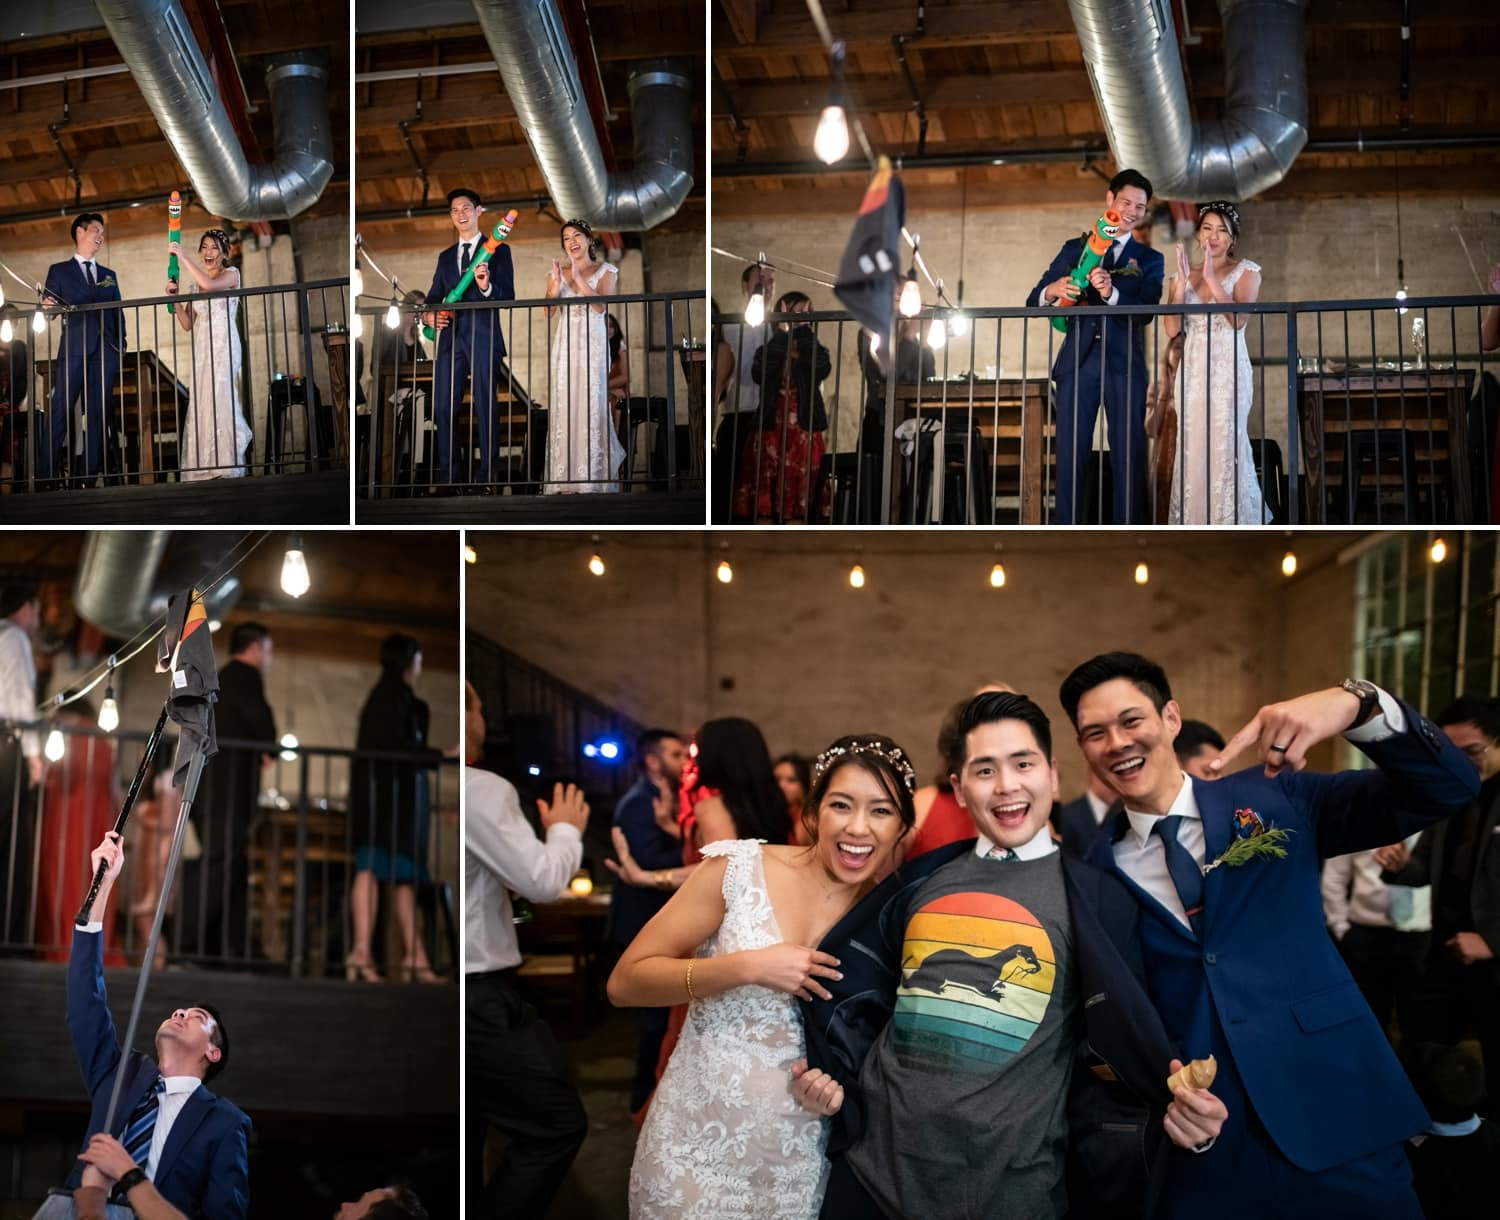 Couple with a T-shirt gun at their wedding.